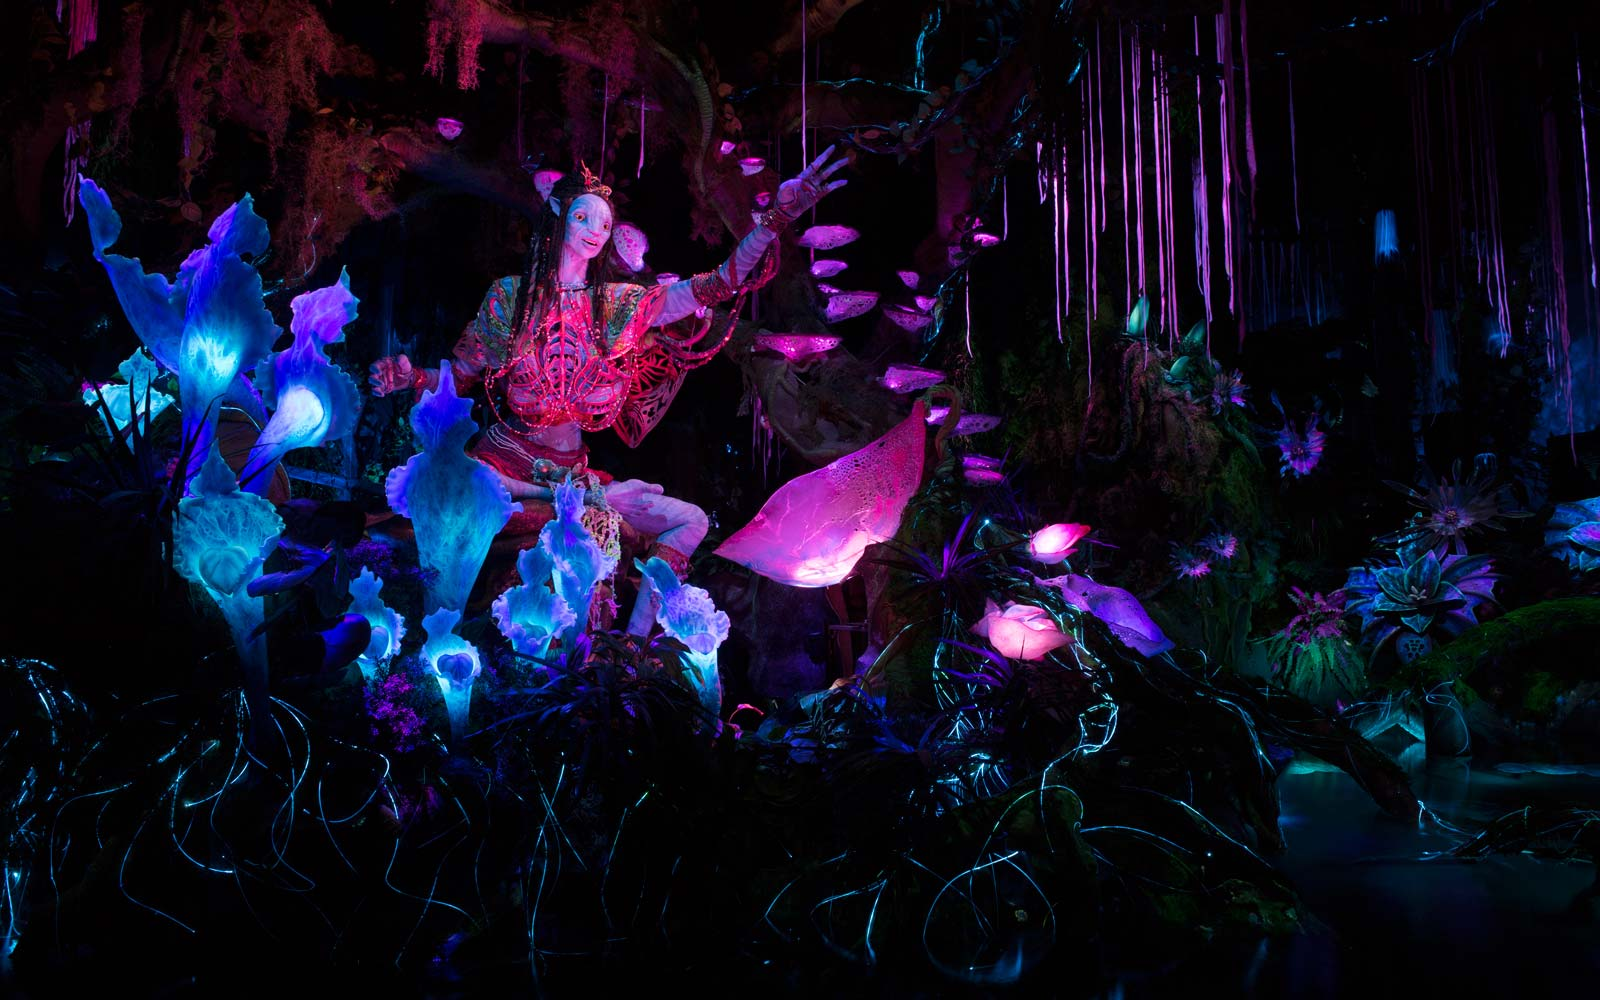 Glowing Na'vi ride at Disney